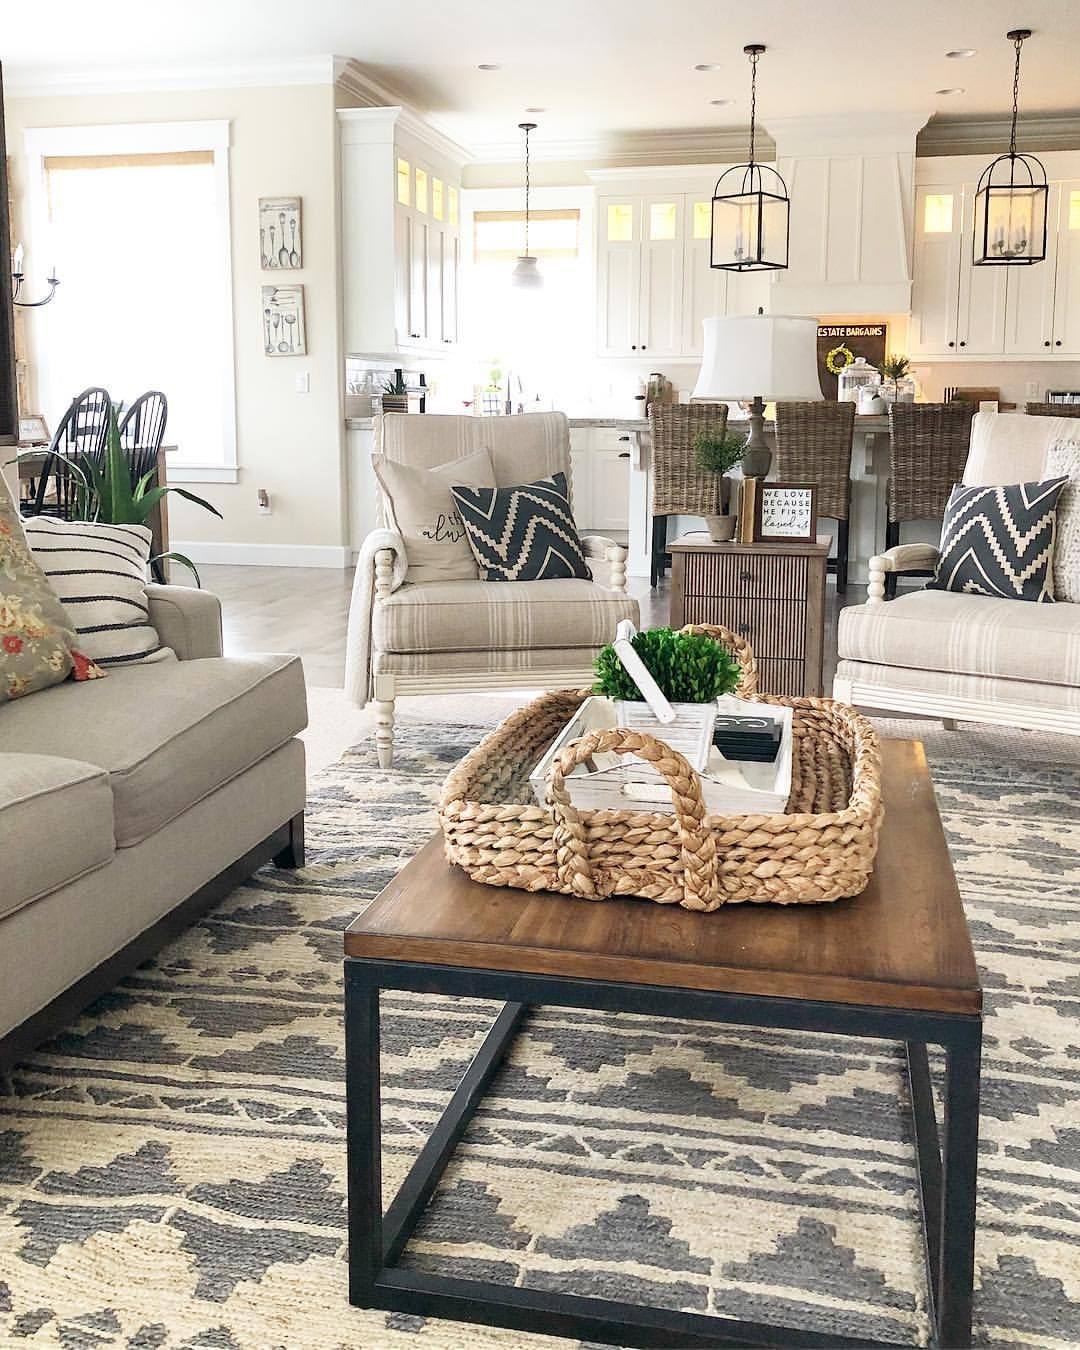 pin by olivia walt on future home in 2018 pinterest interieur home decor and meubels